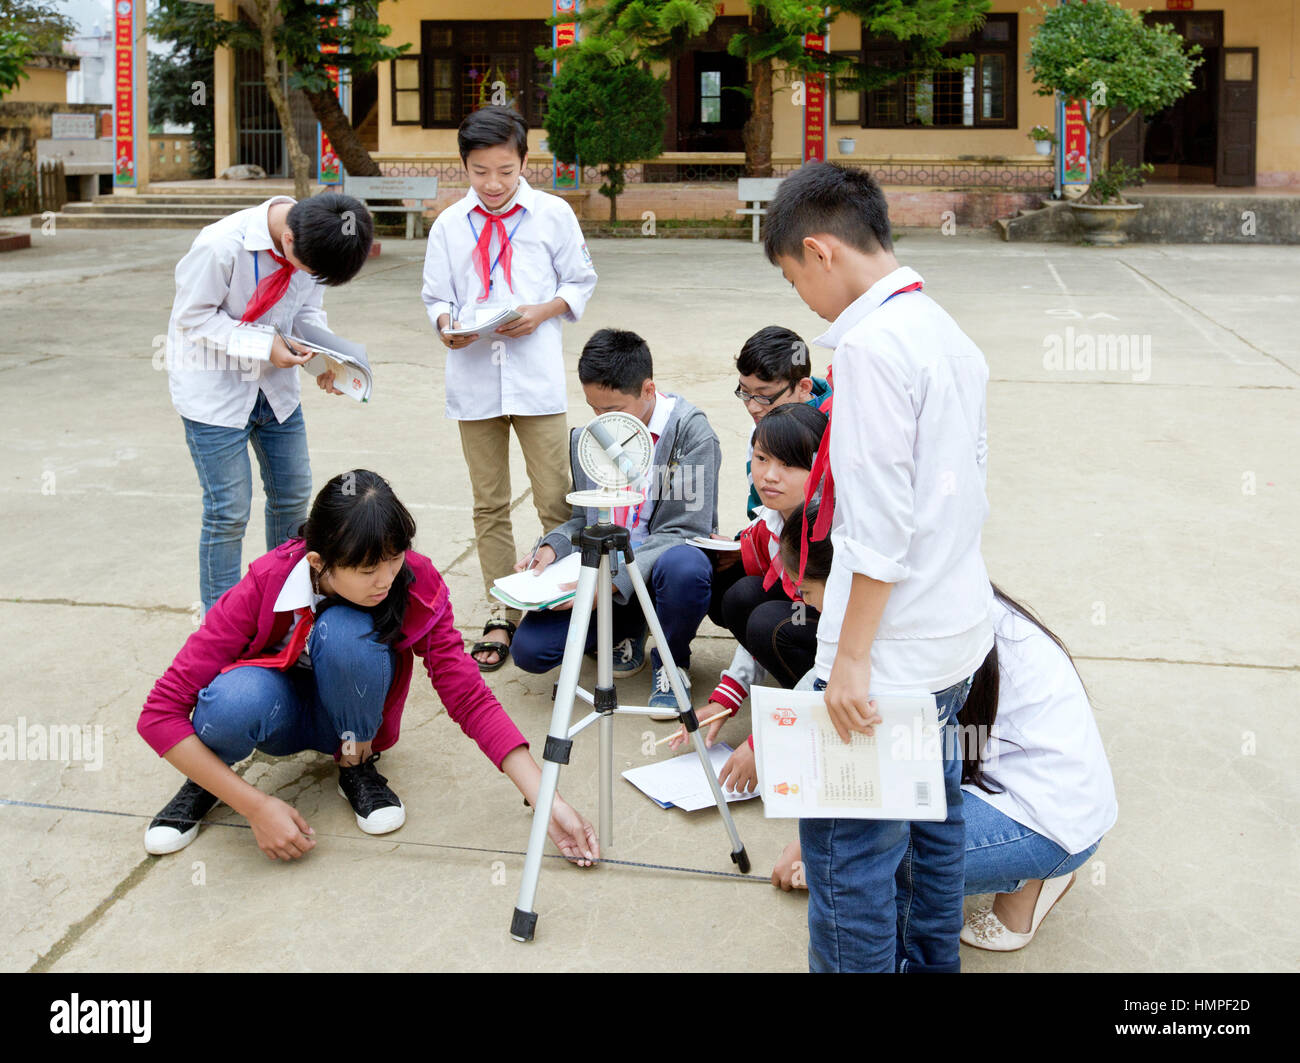 School children attending outdoor classroom, learning how to operate a sextant, Thai Giang Pho Bording School. - Stock Image